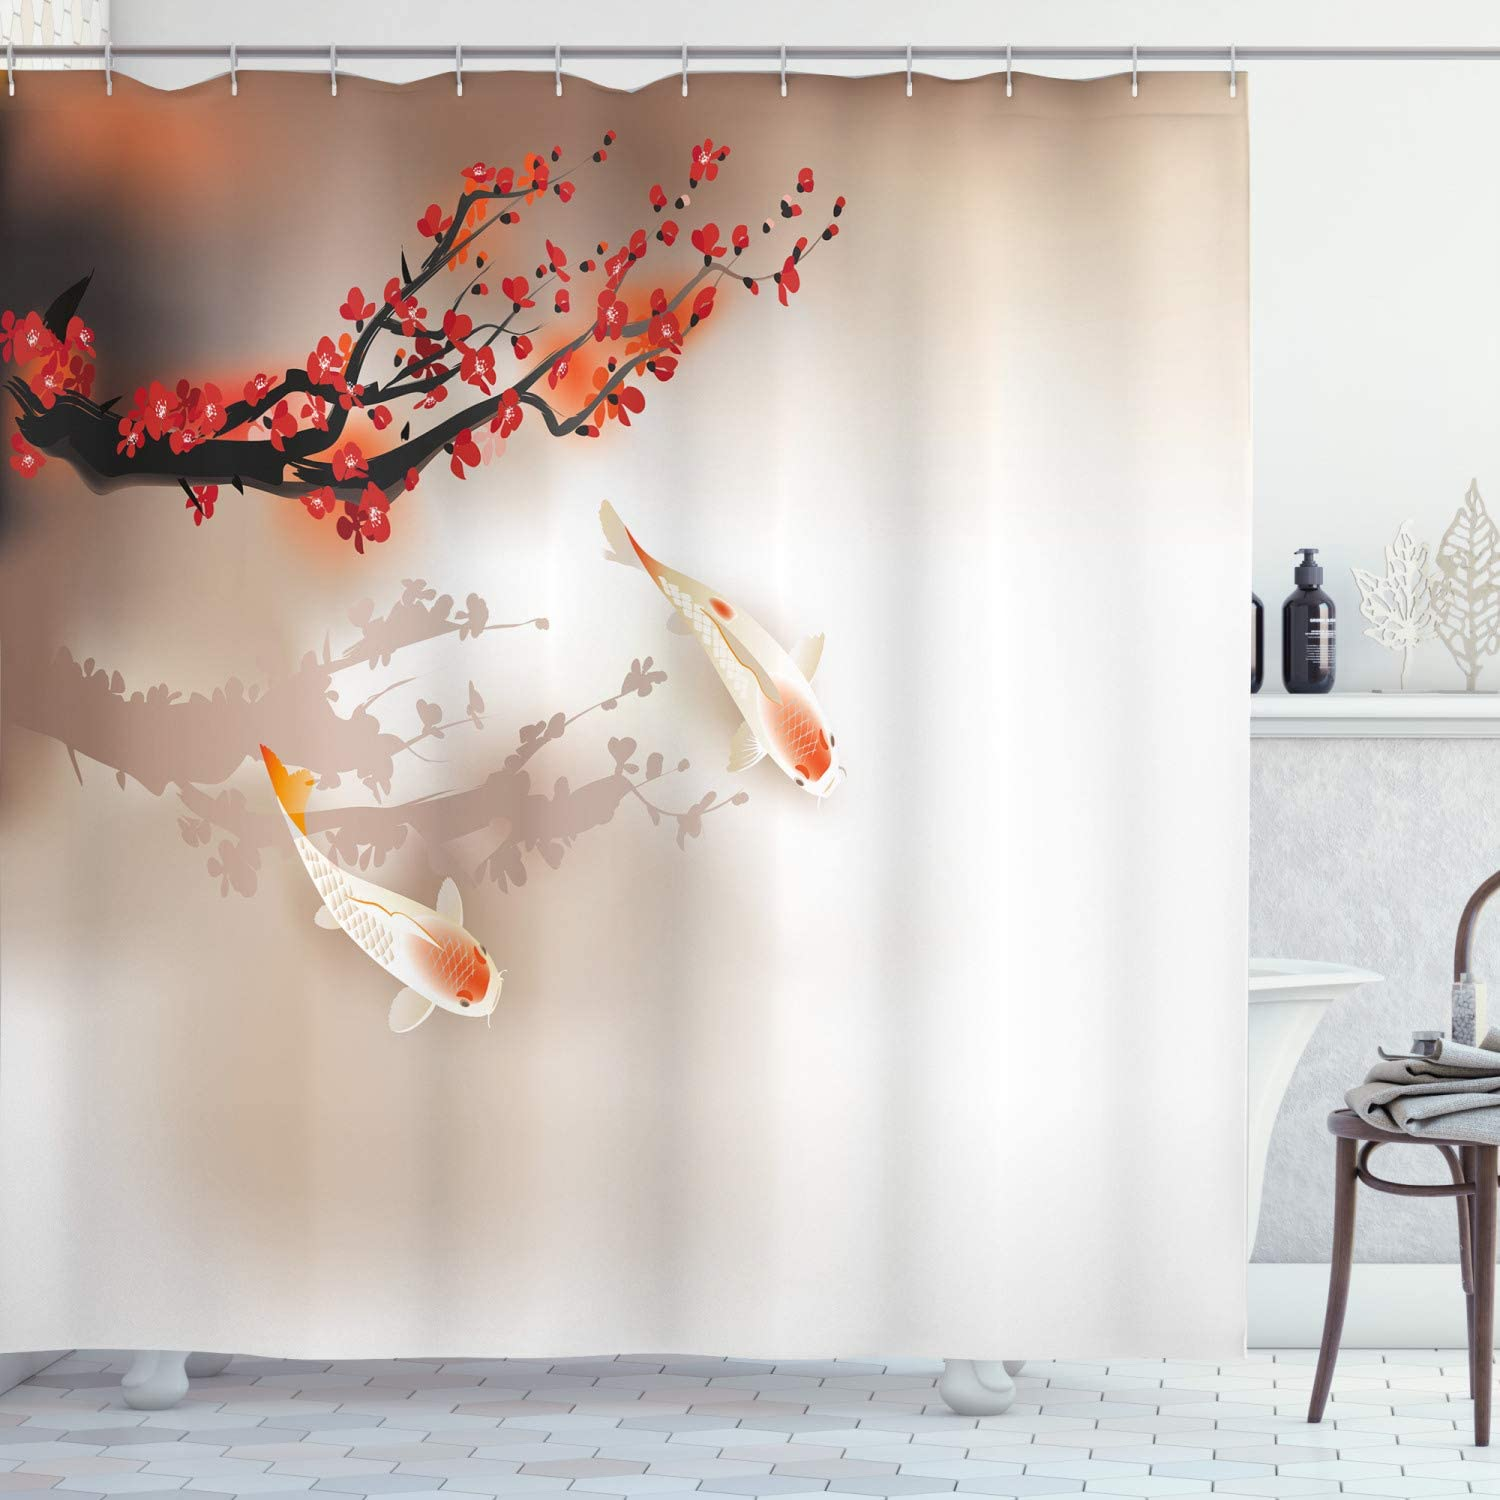 """Lunarable Koi Fish Shower Curtain, Sakura Branch and Leaves Animals in Small Body of Water Oriental Style, Cloth Fabric Bathroom Decor Set with Hooks, 70"""" Long, Peach Black Red"""